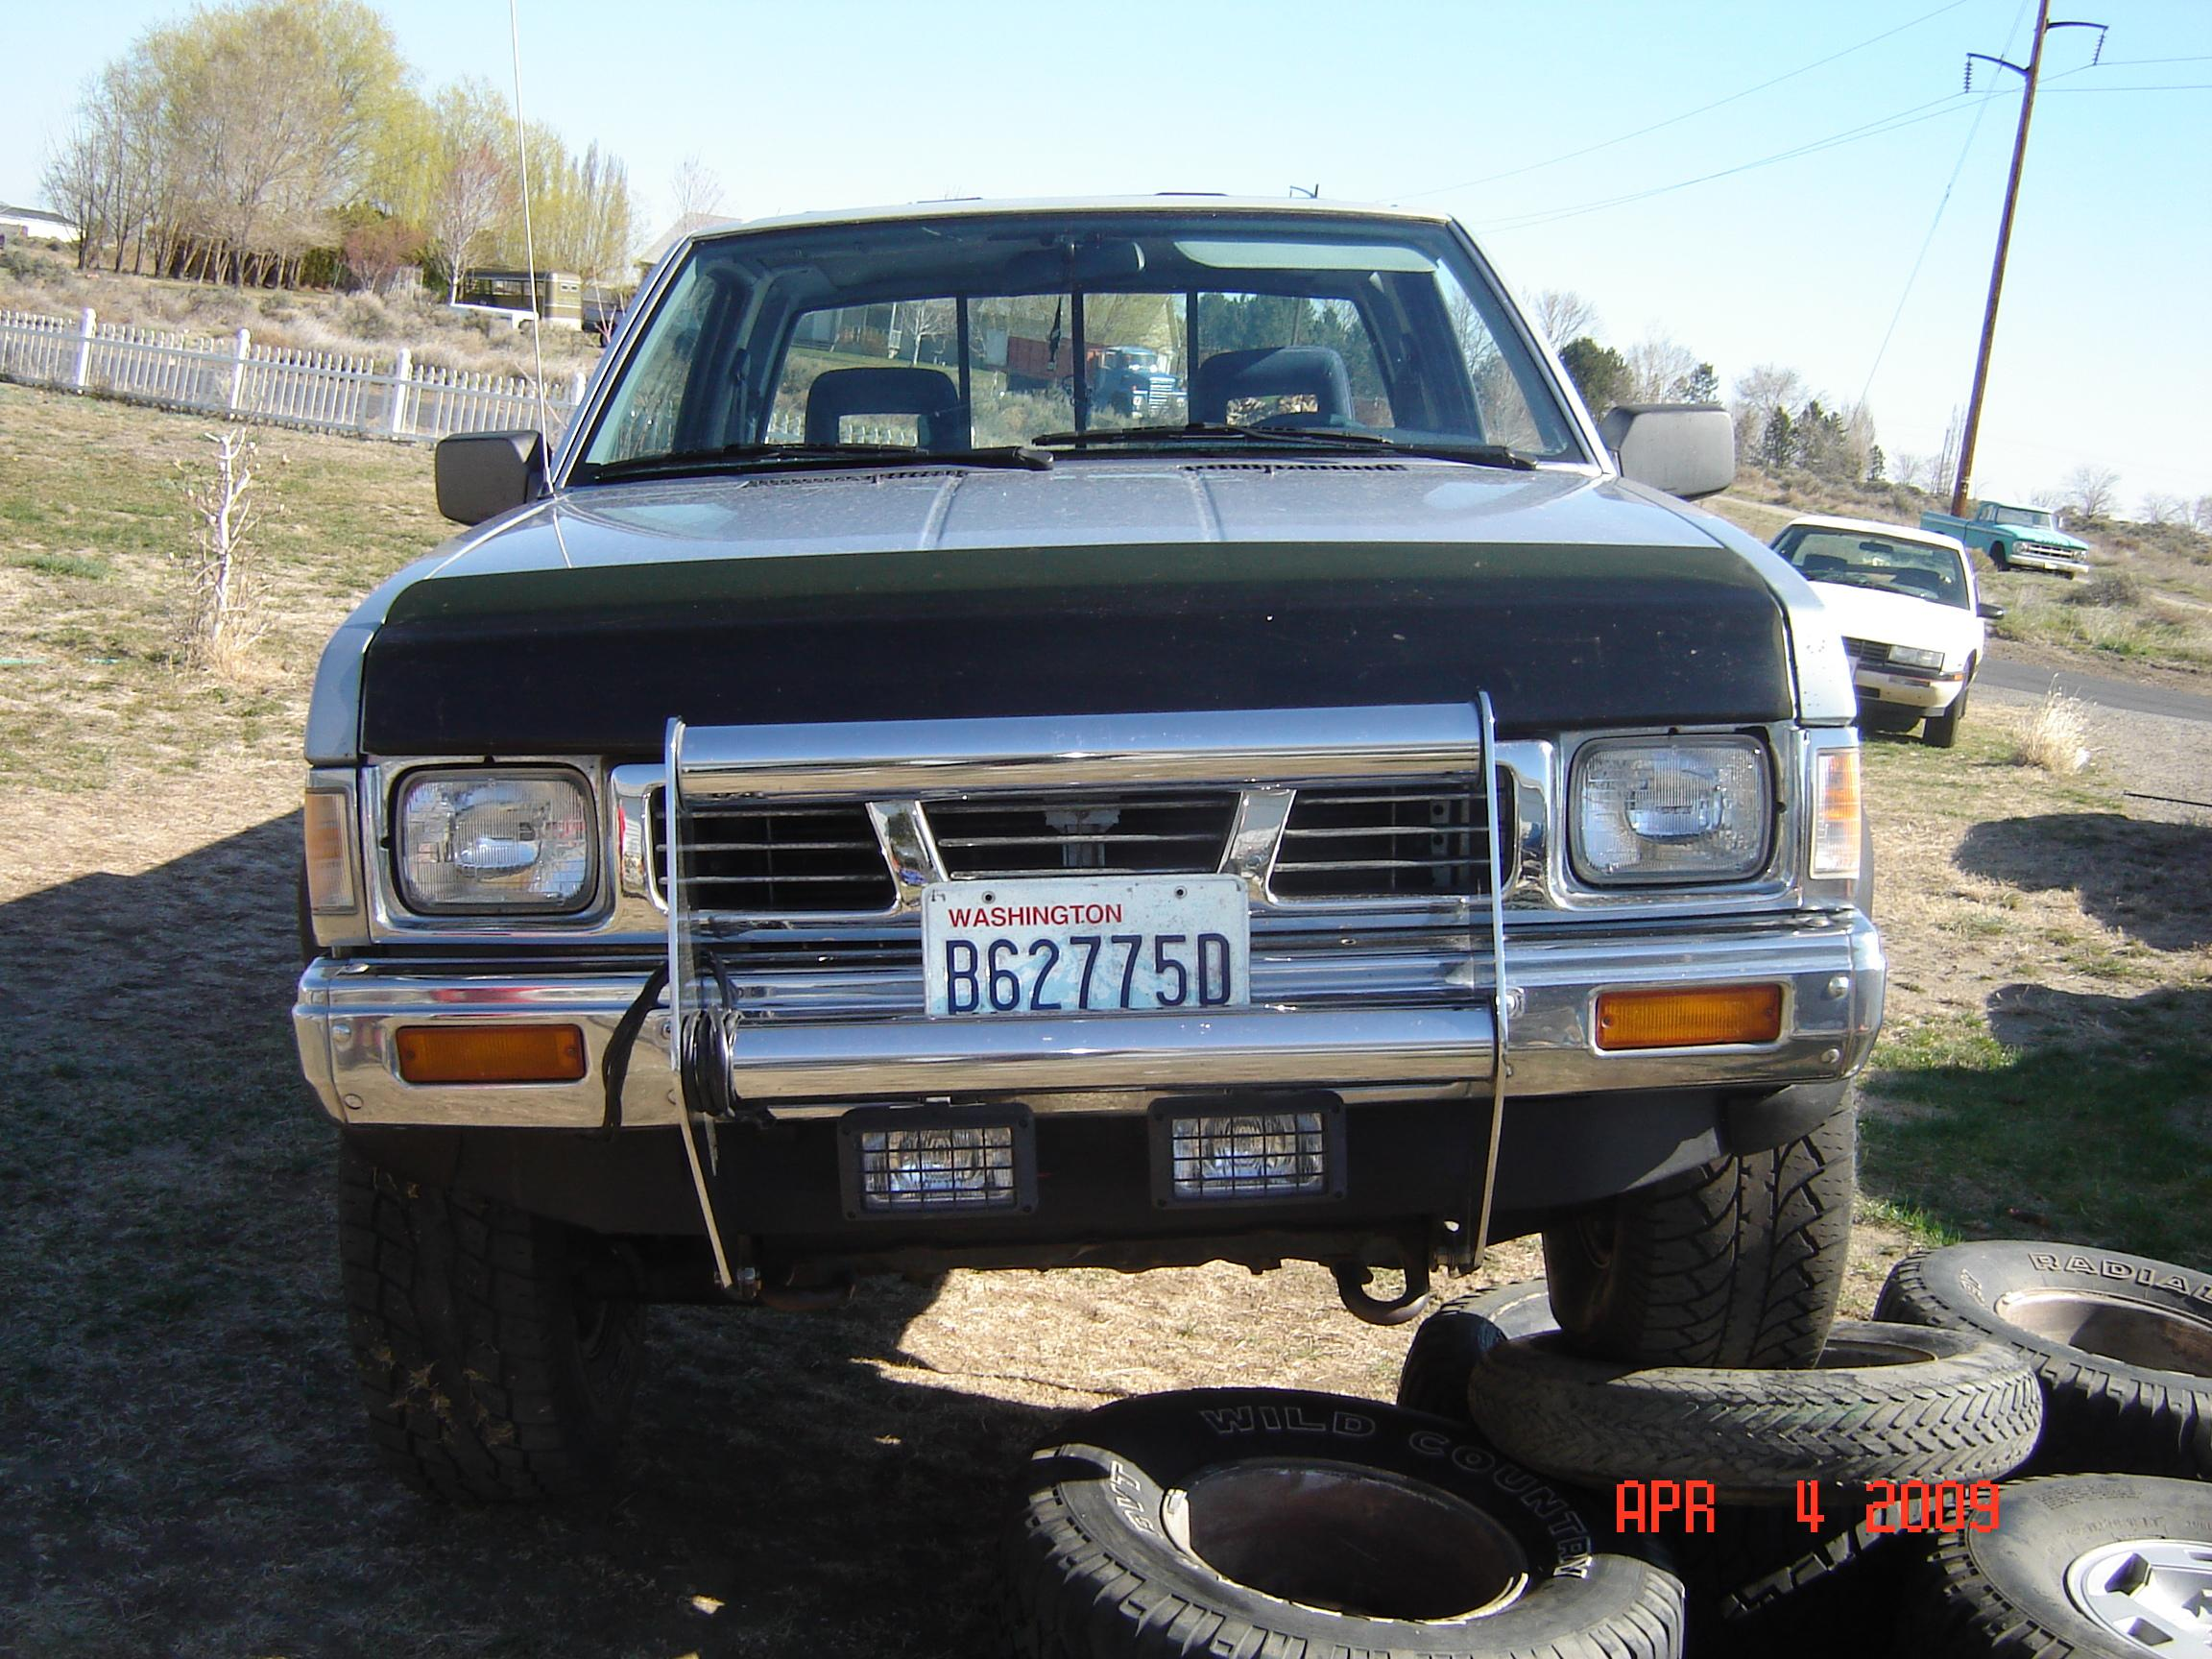 wmbthe4's 1990 Nissan D21 Pick-Up